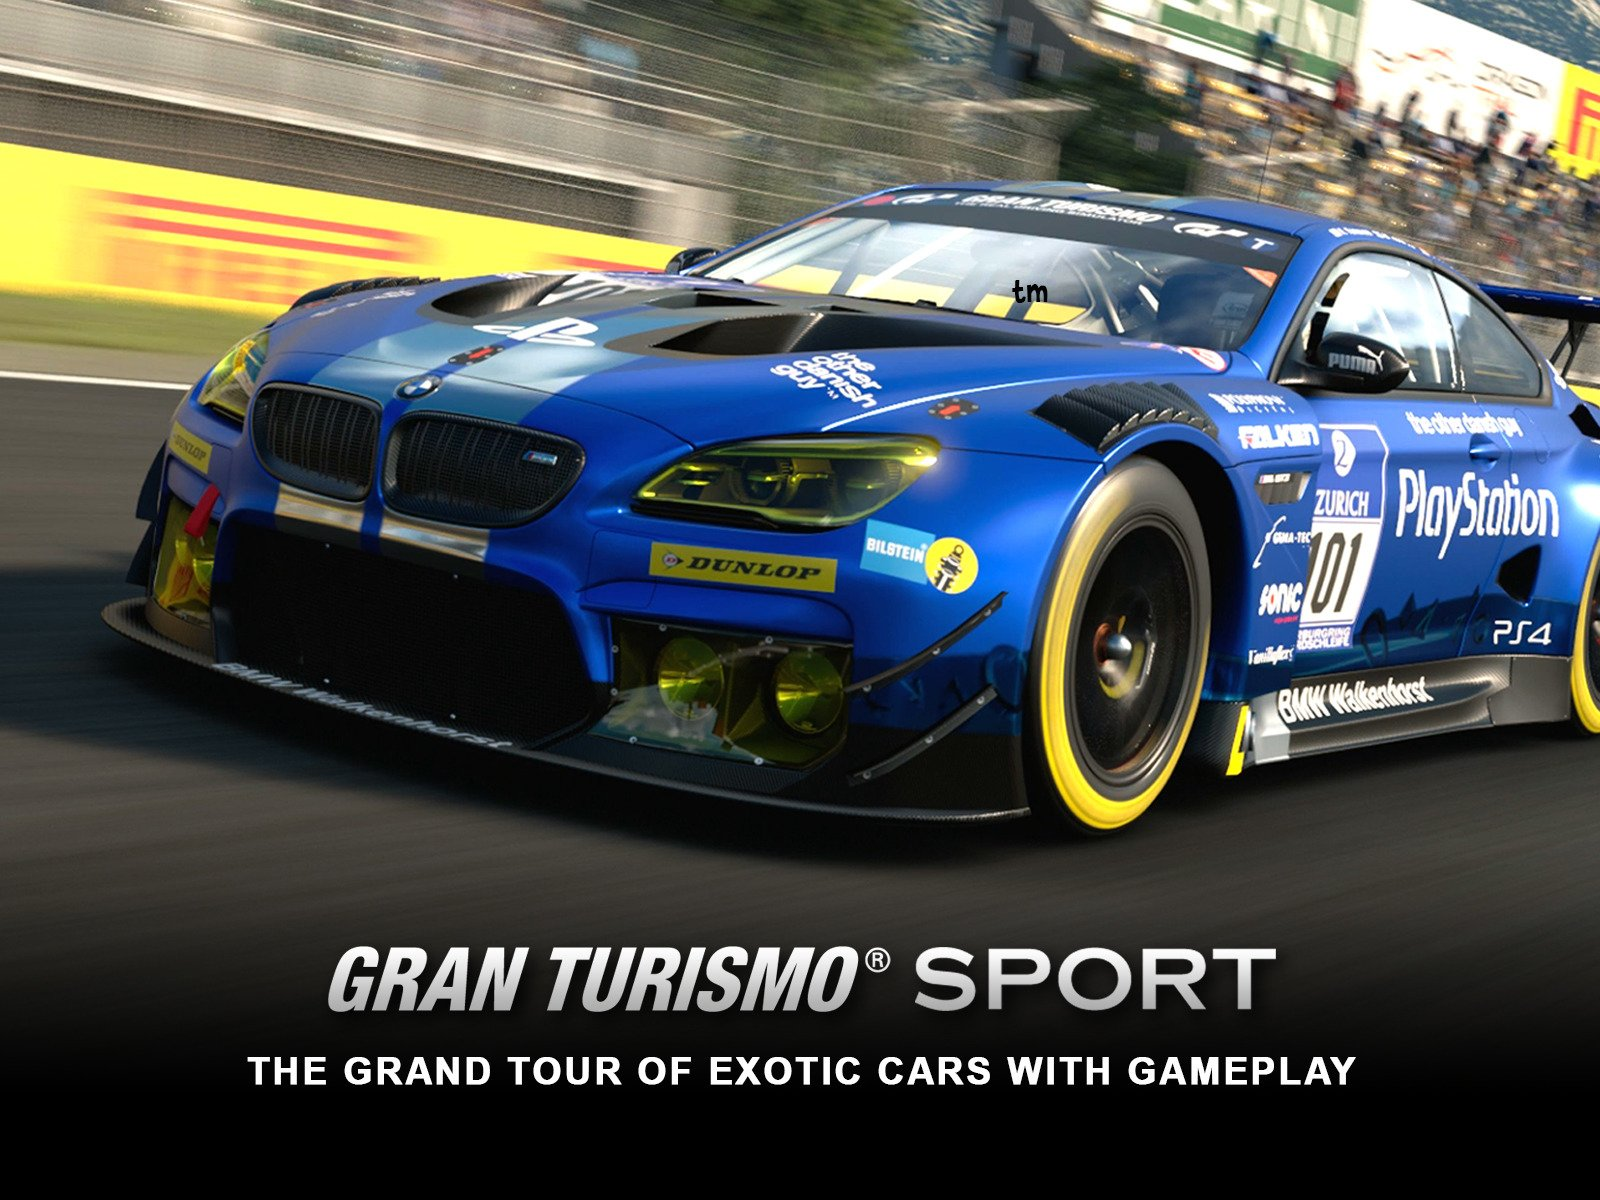 Clip: Gran Turismo Sport: The Grand Tour of Exotic Cars with Gameplay - Season 1